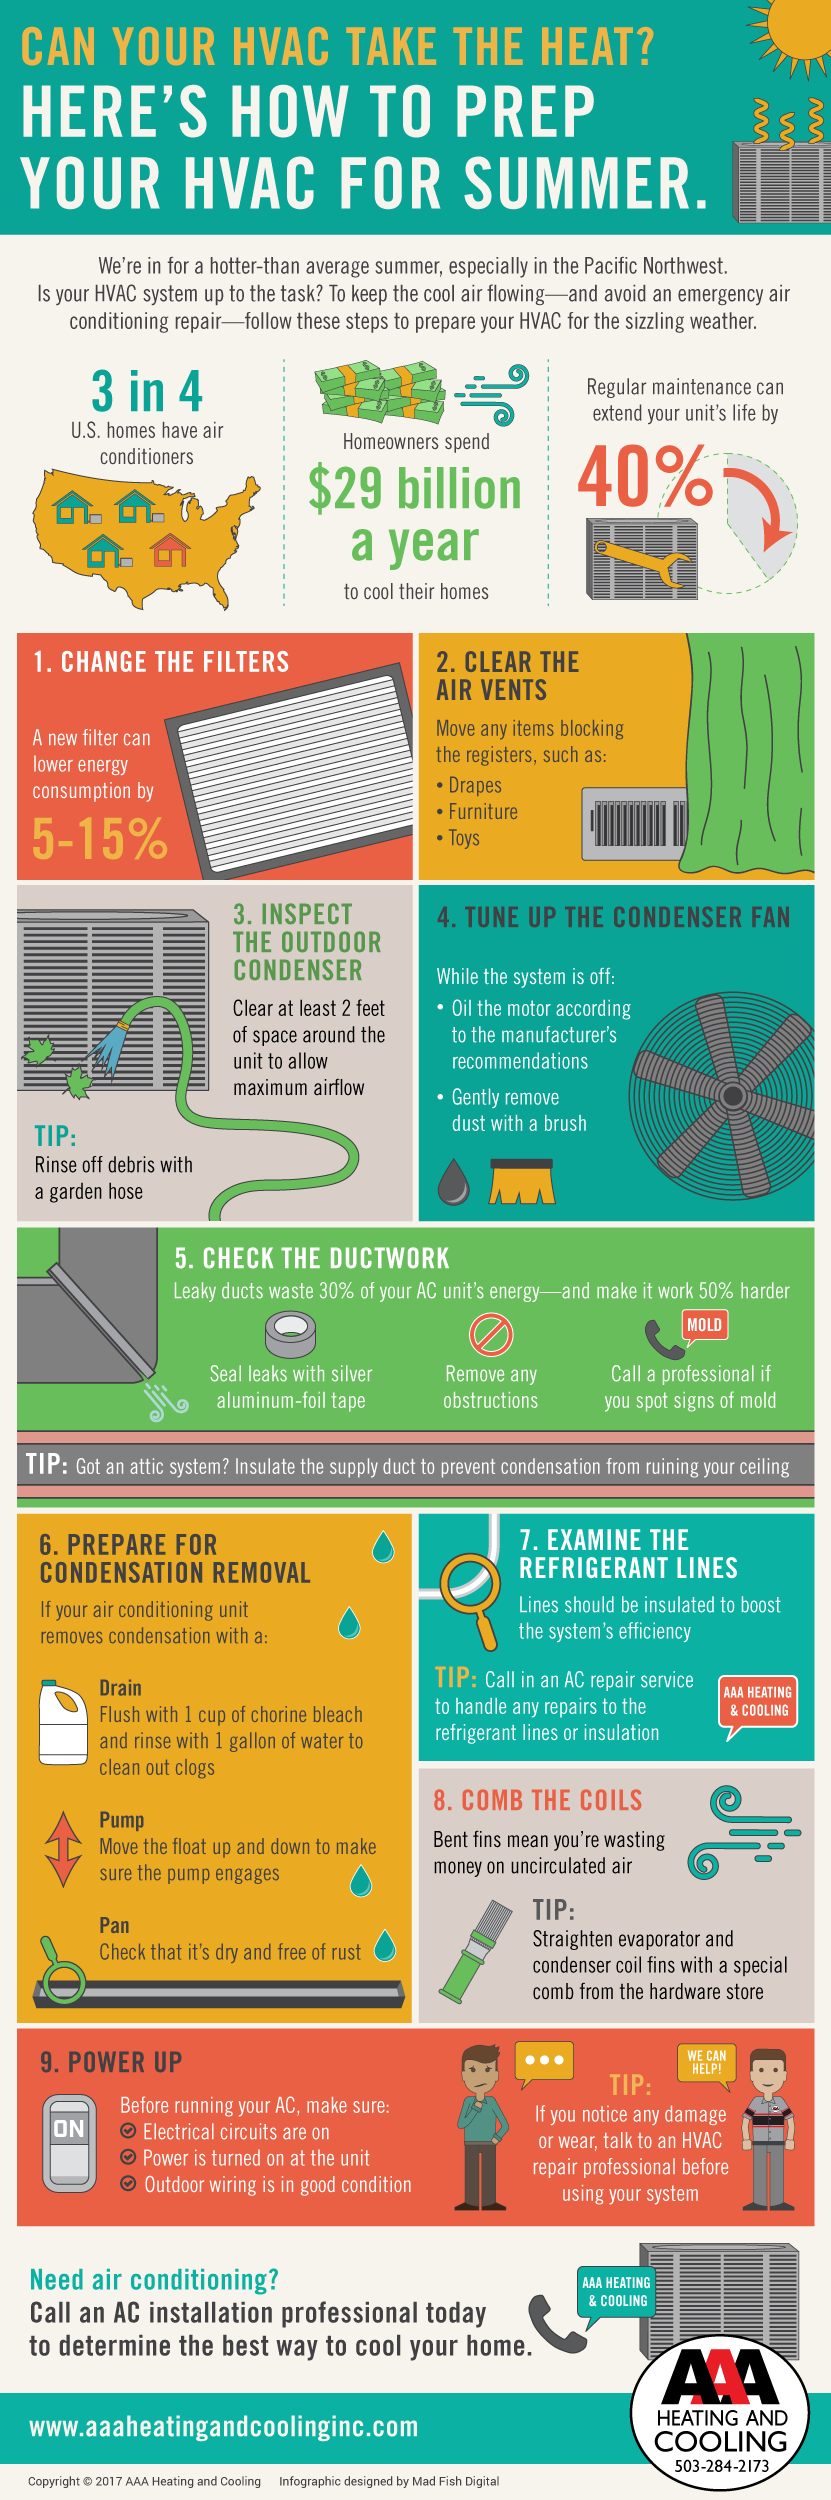 AAA_Prep-Your-HVAC_Infographic